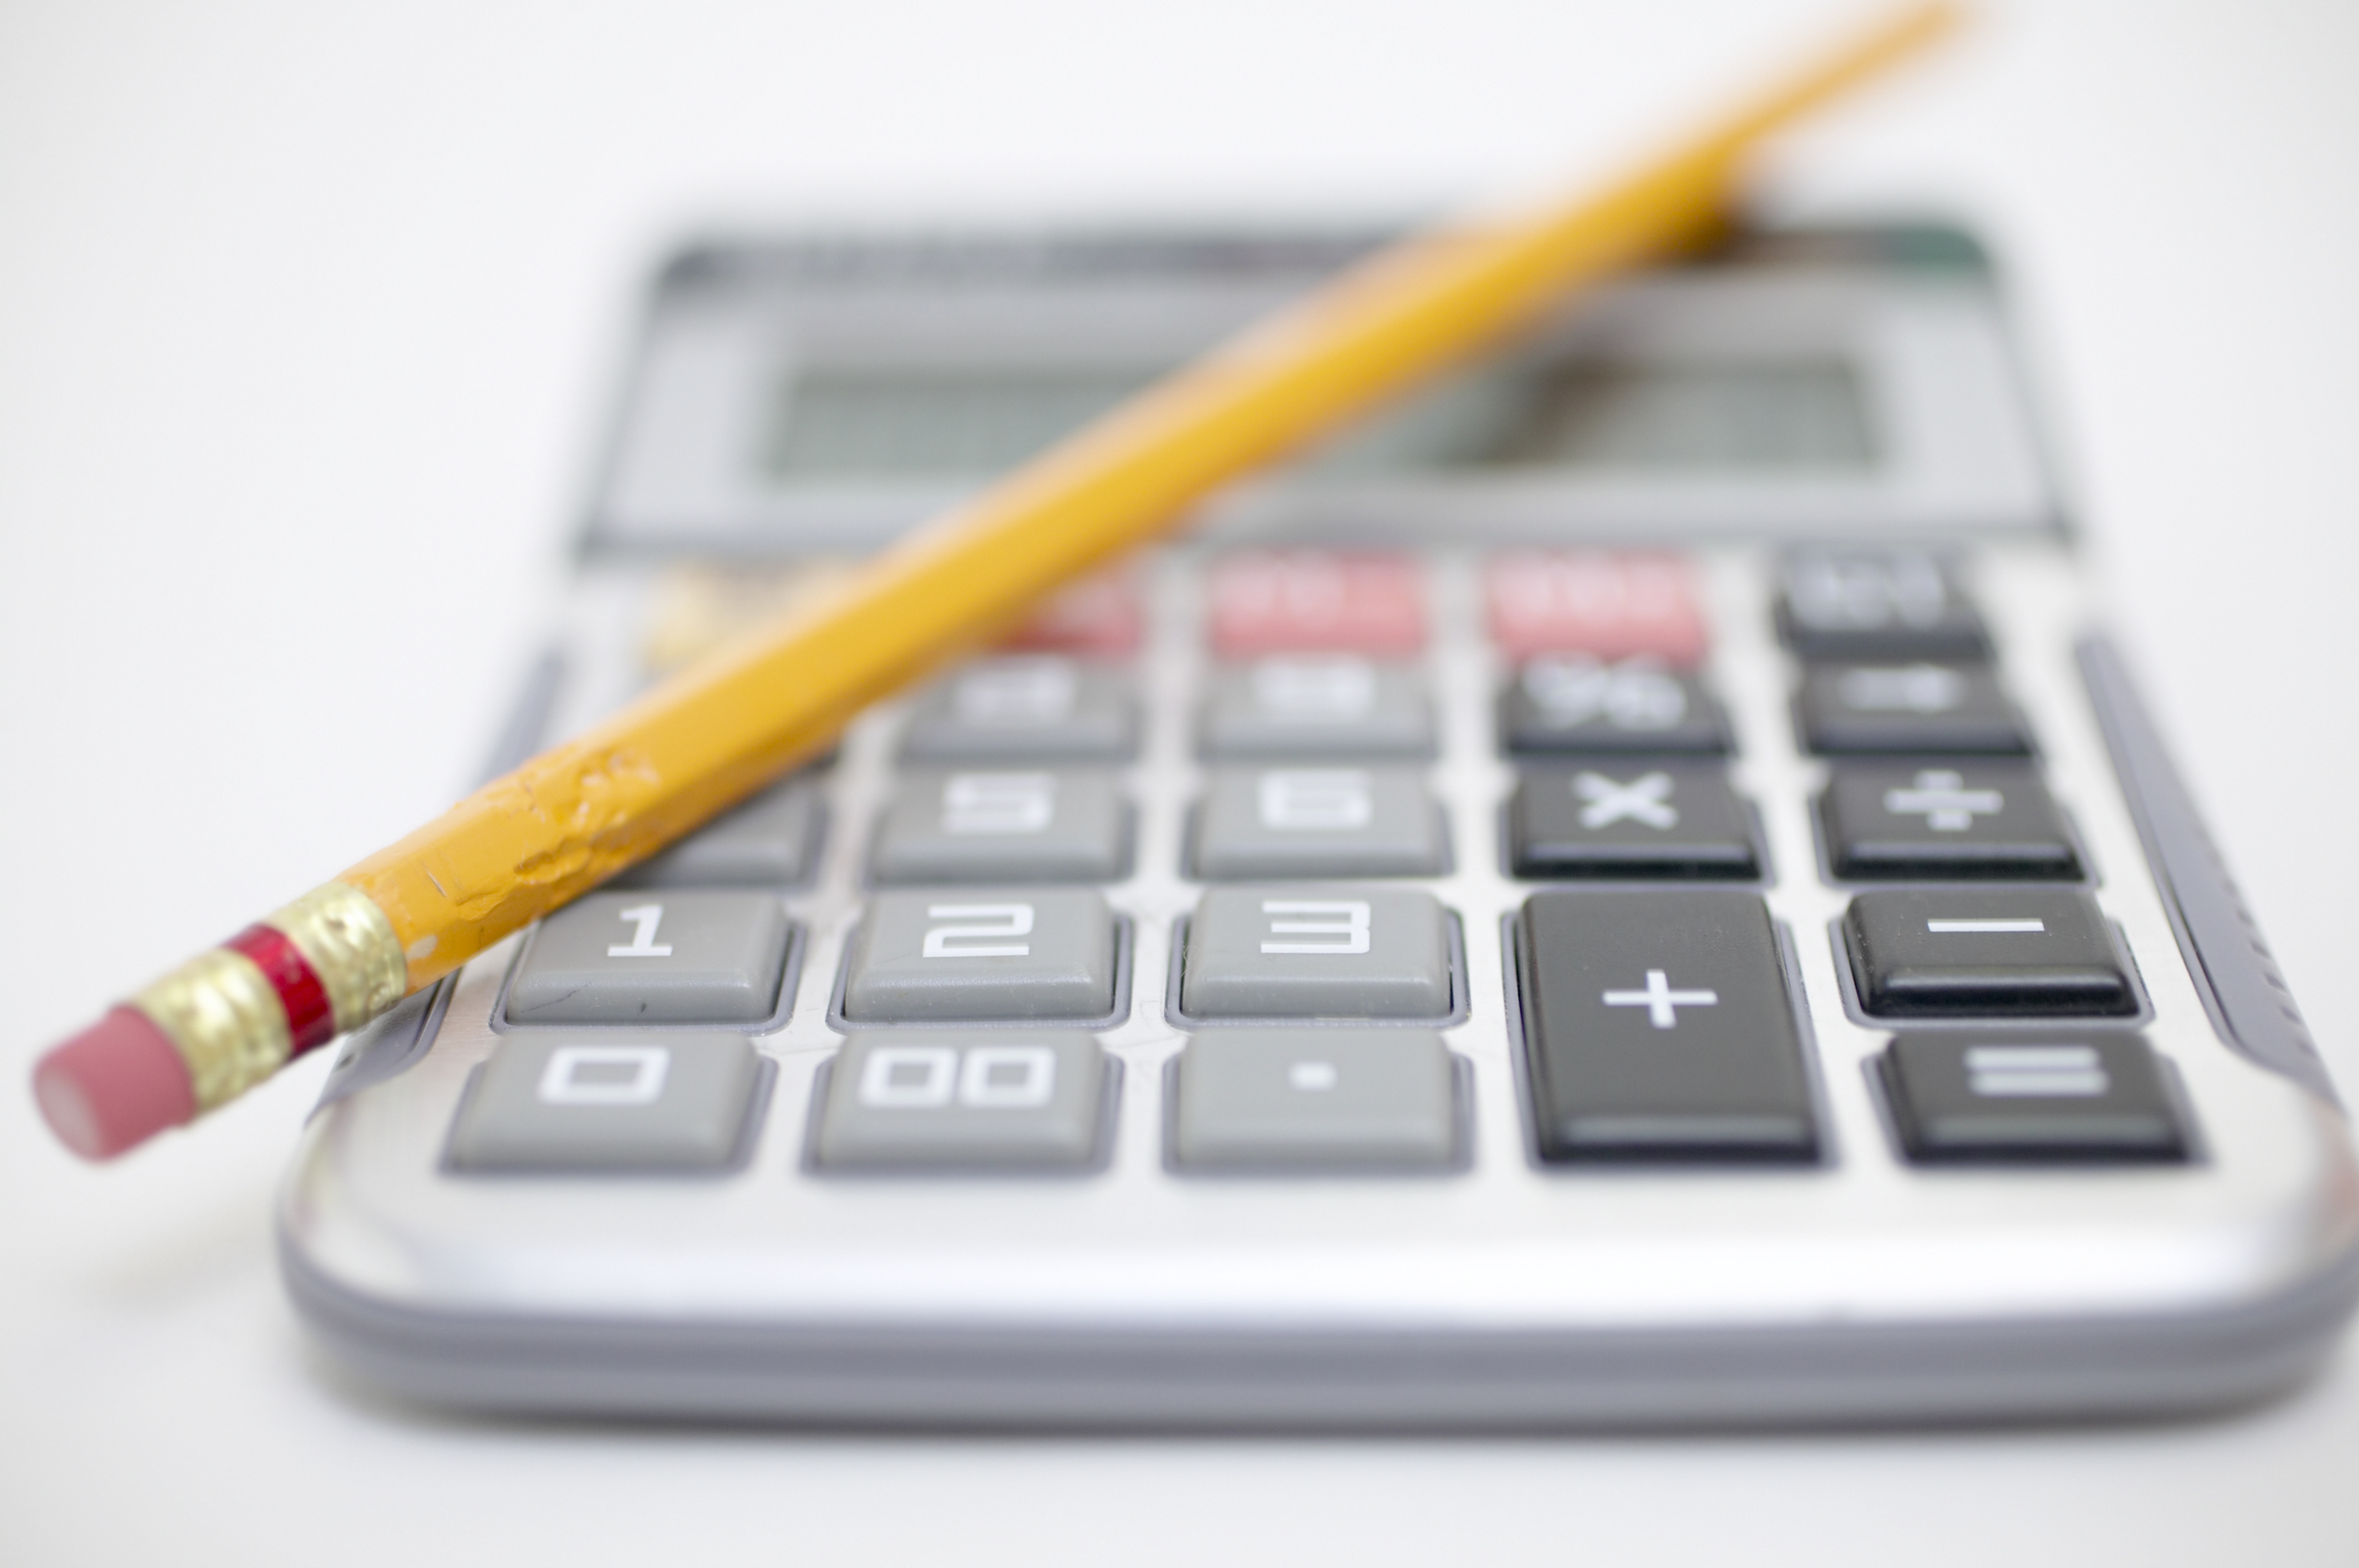 How to Add Up Your Grade Point Average